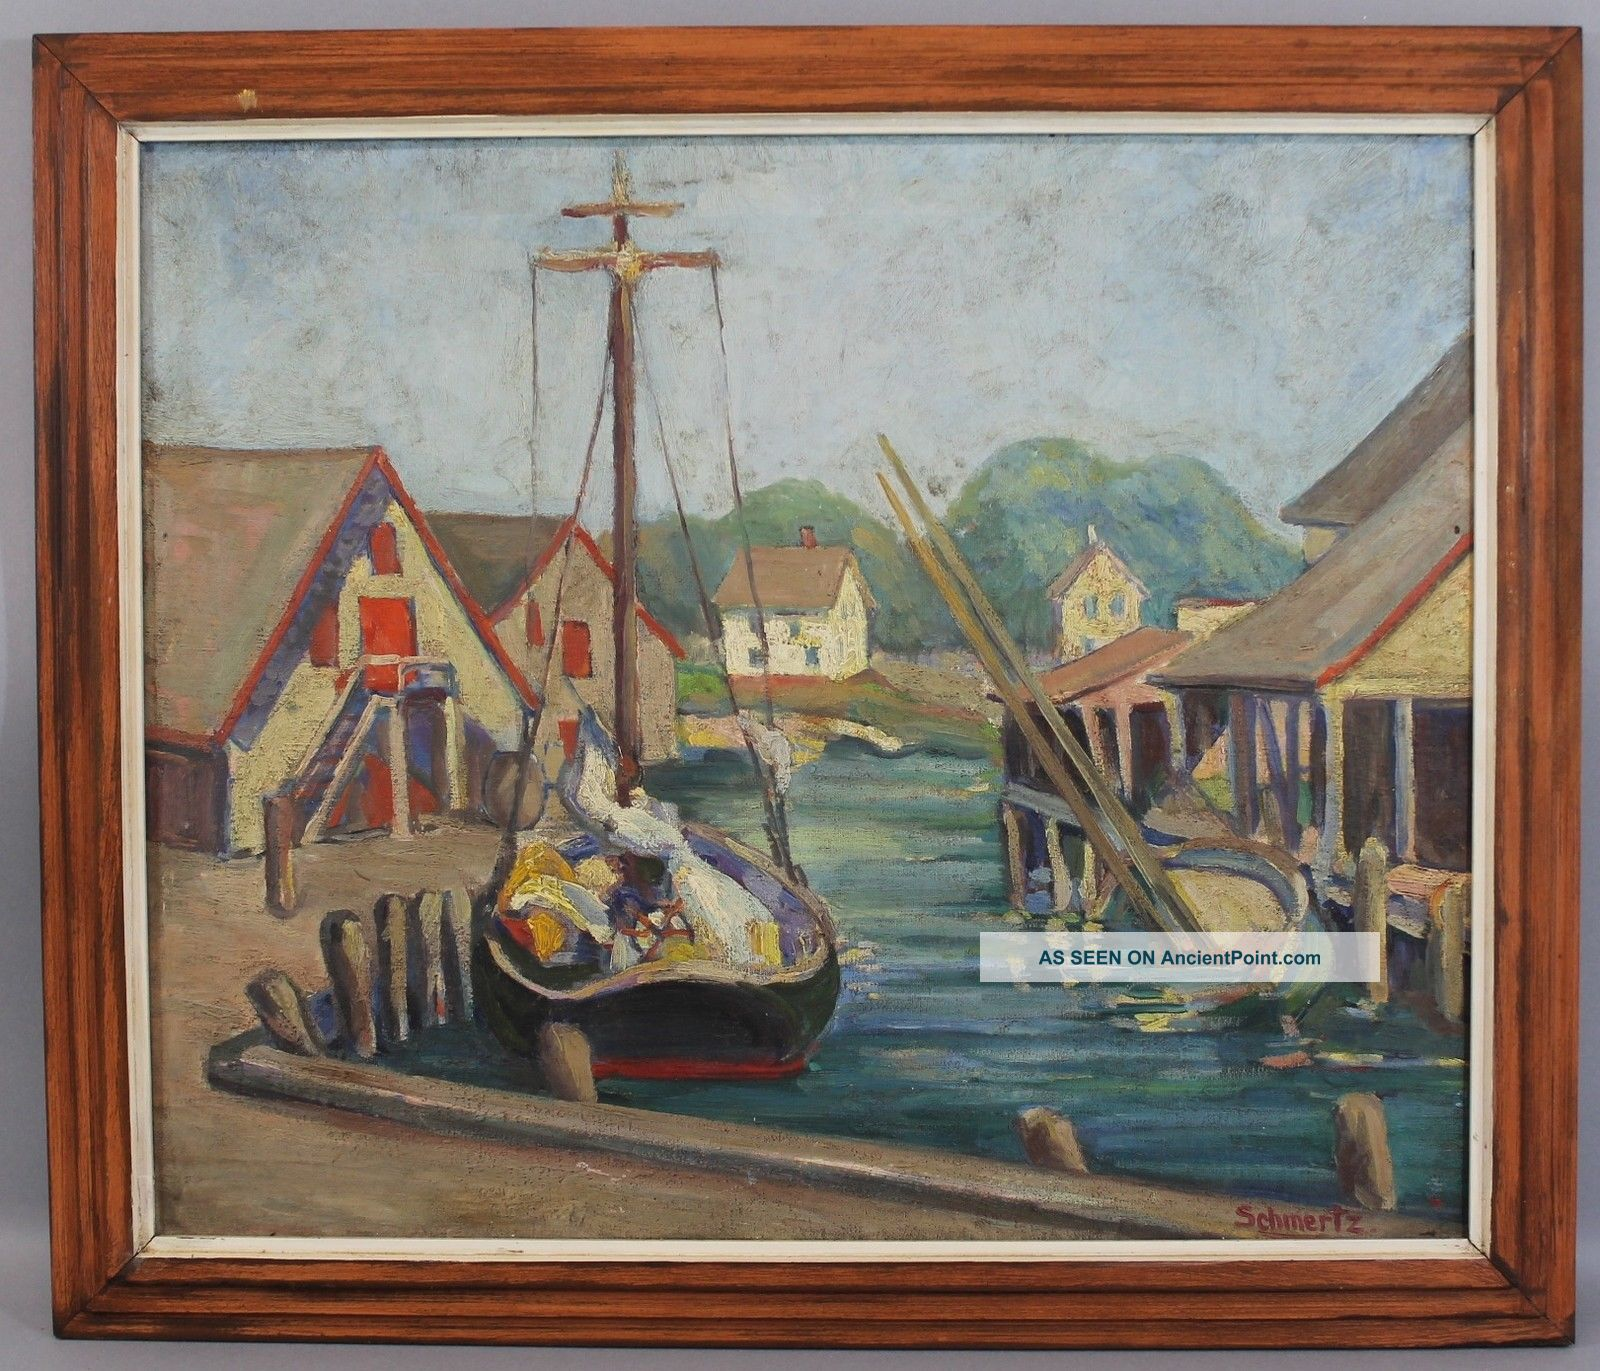 Antique Early 20thc Schmertz Boat Harbor Oil Painting,  Rockport School Other Maritime Antiques photo